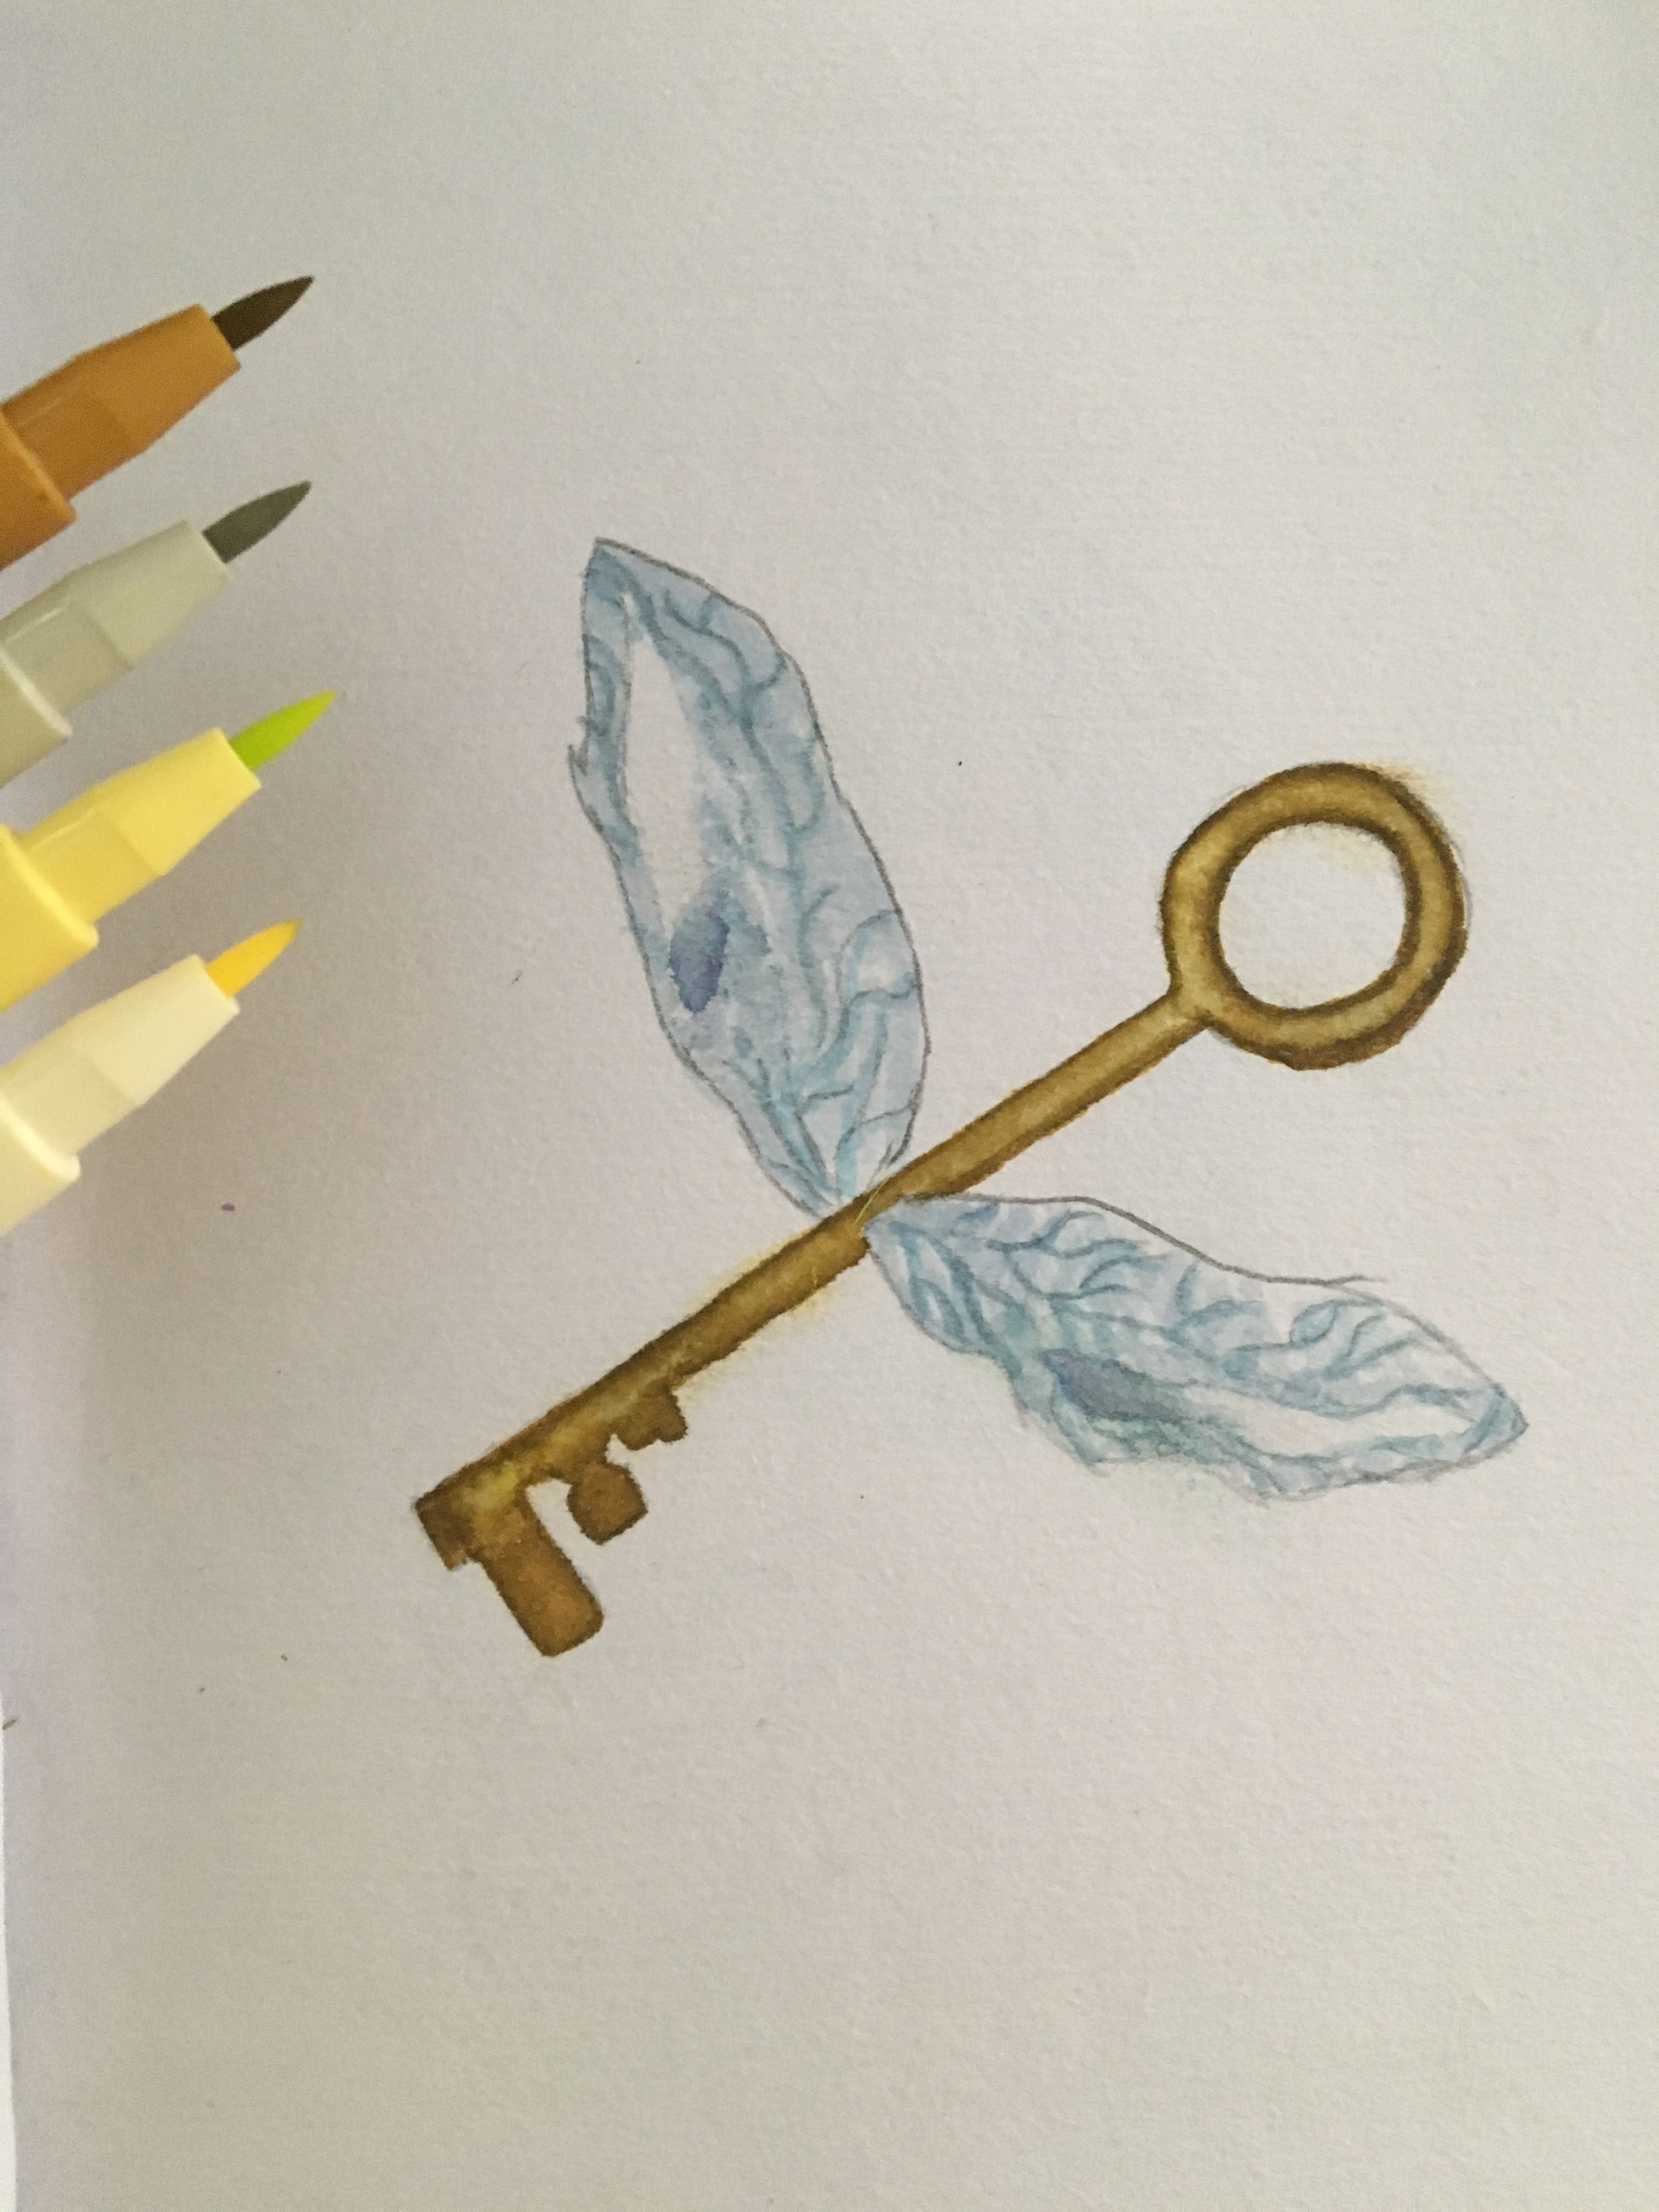 Harry potter flying key drawing